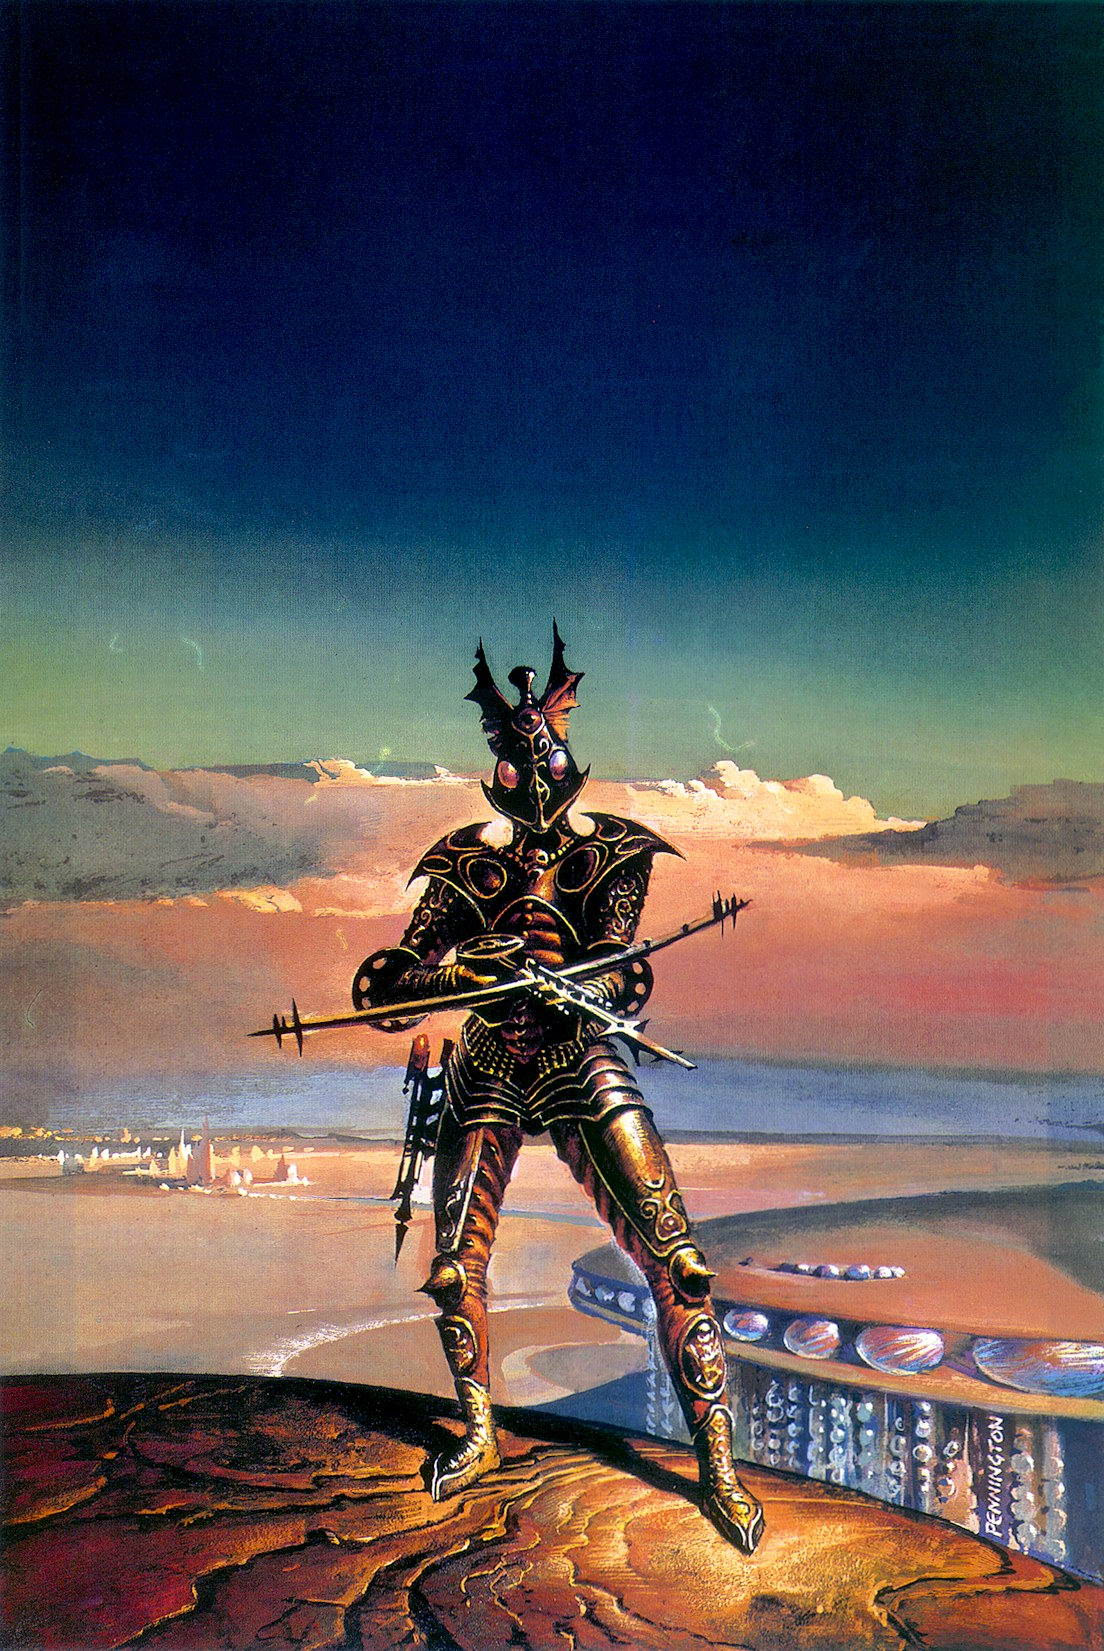 Bruce Pennington - Beyond This Horizon